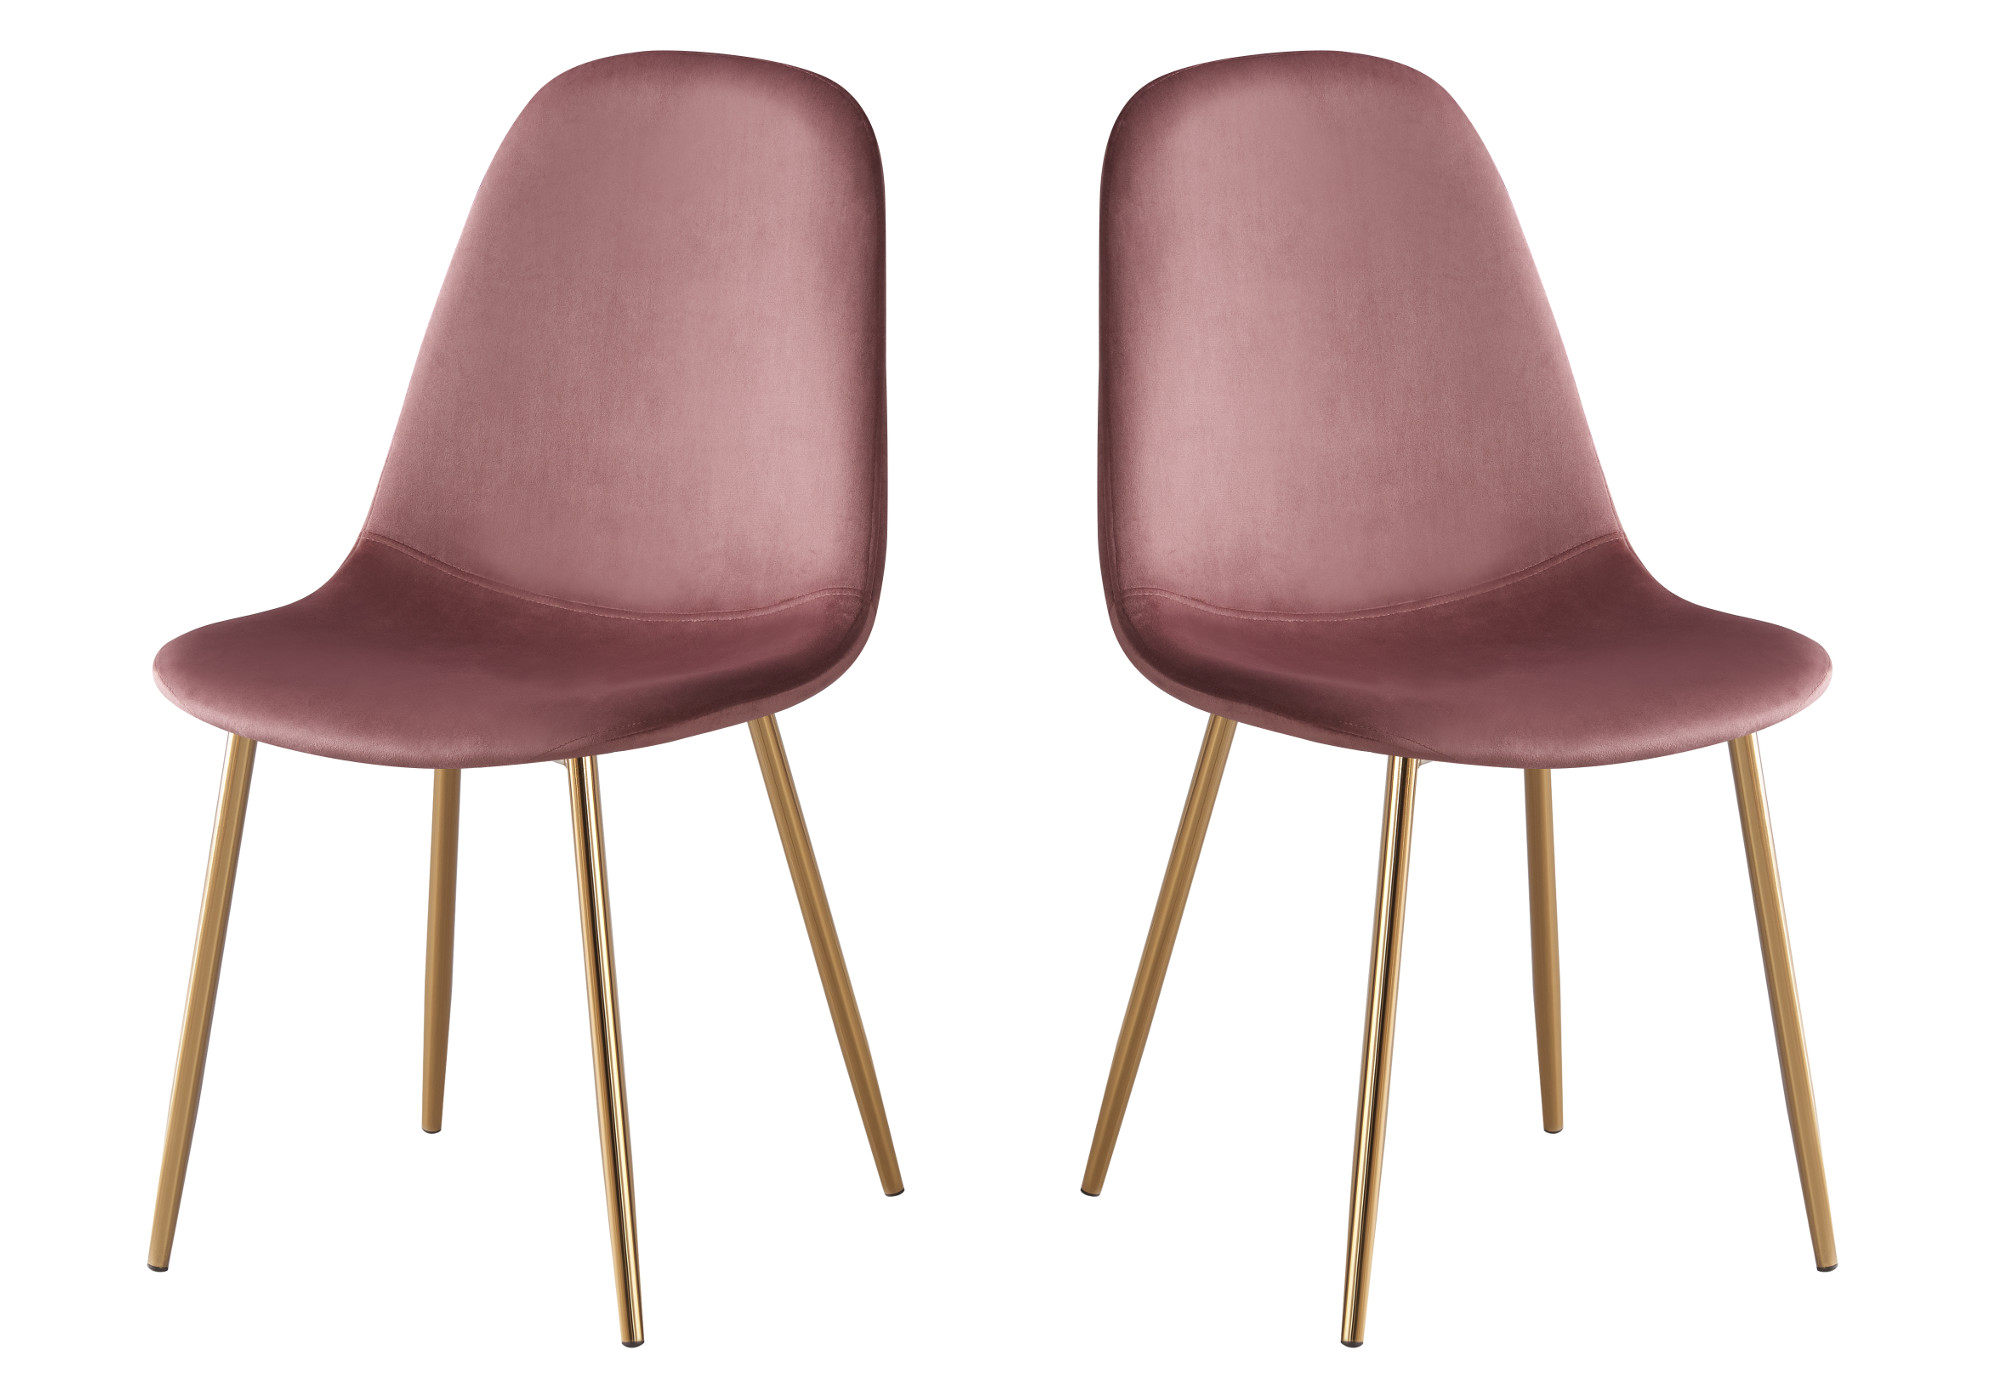 Chaises scandinave velours rose LOA